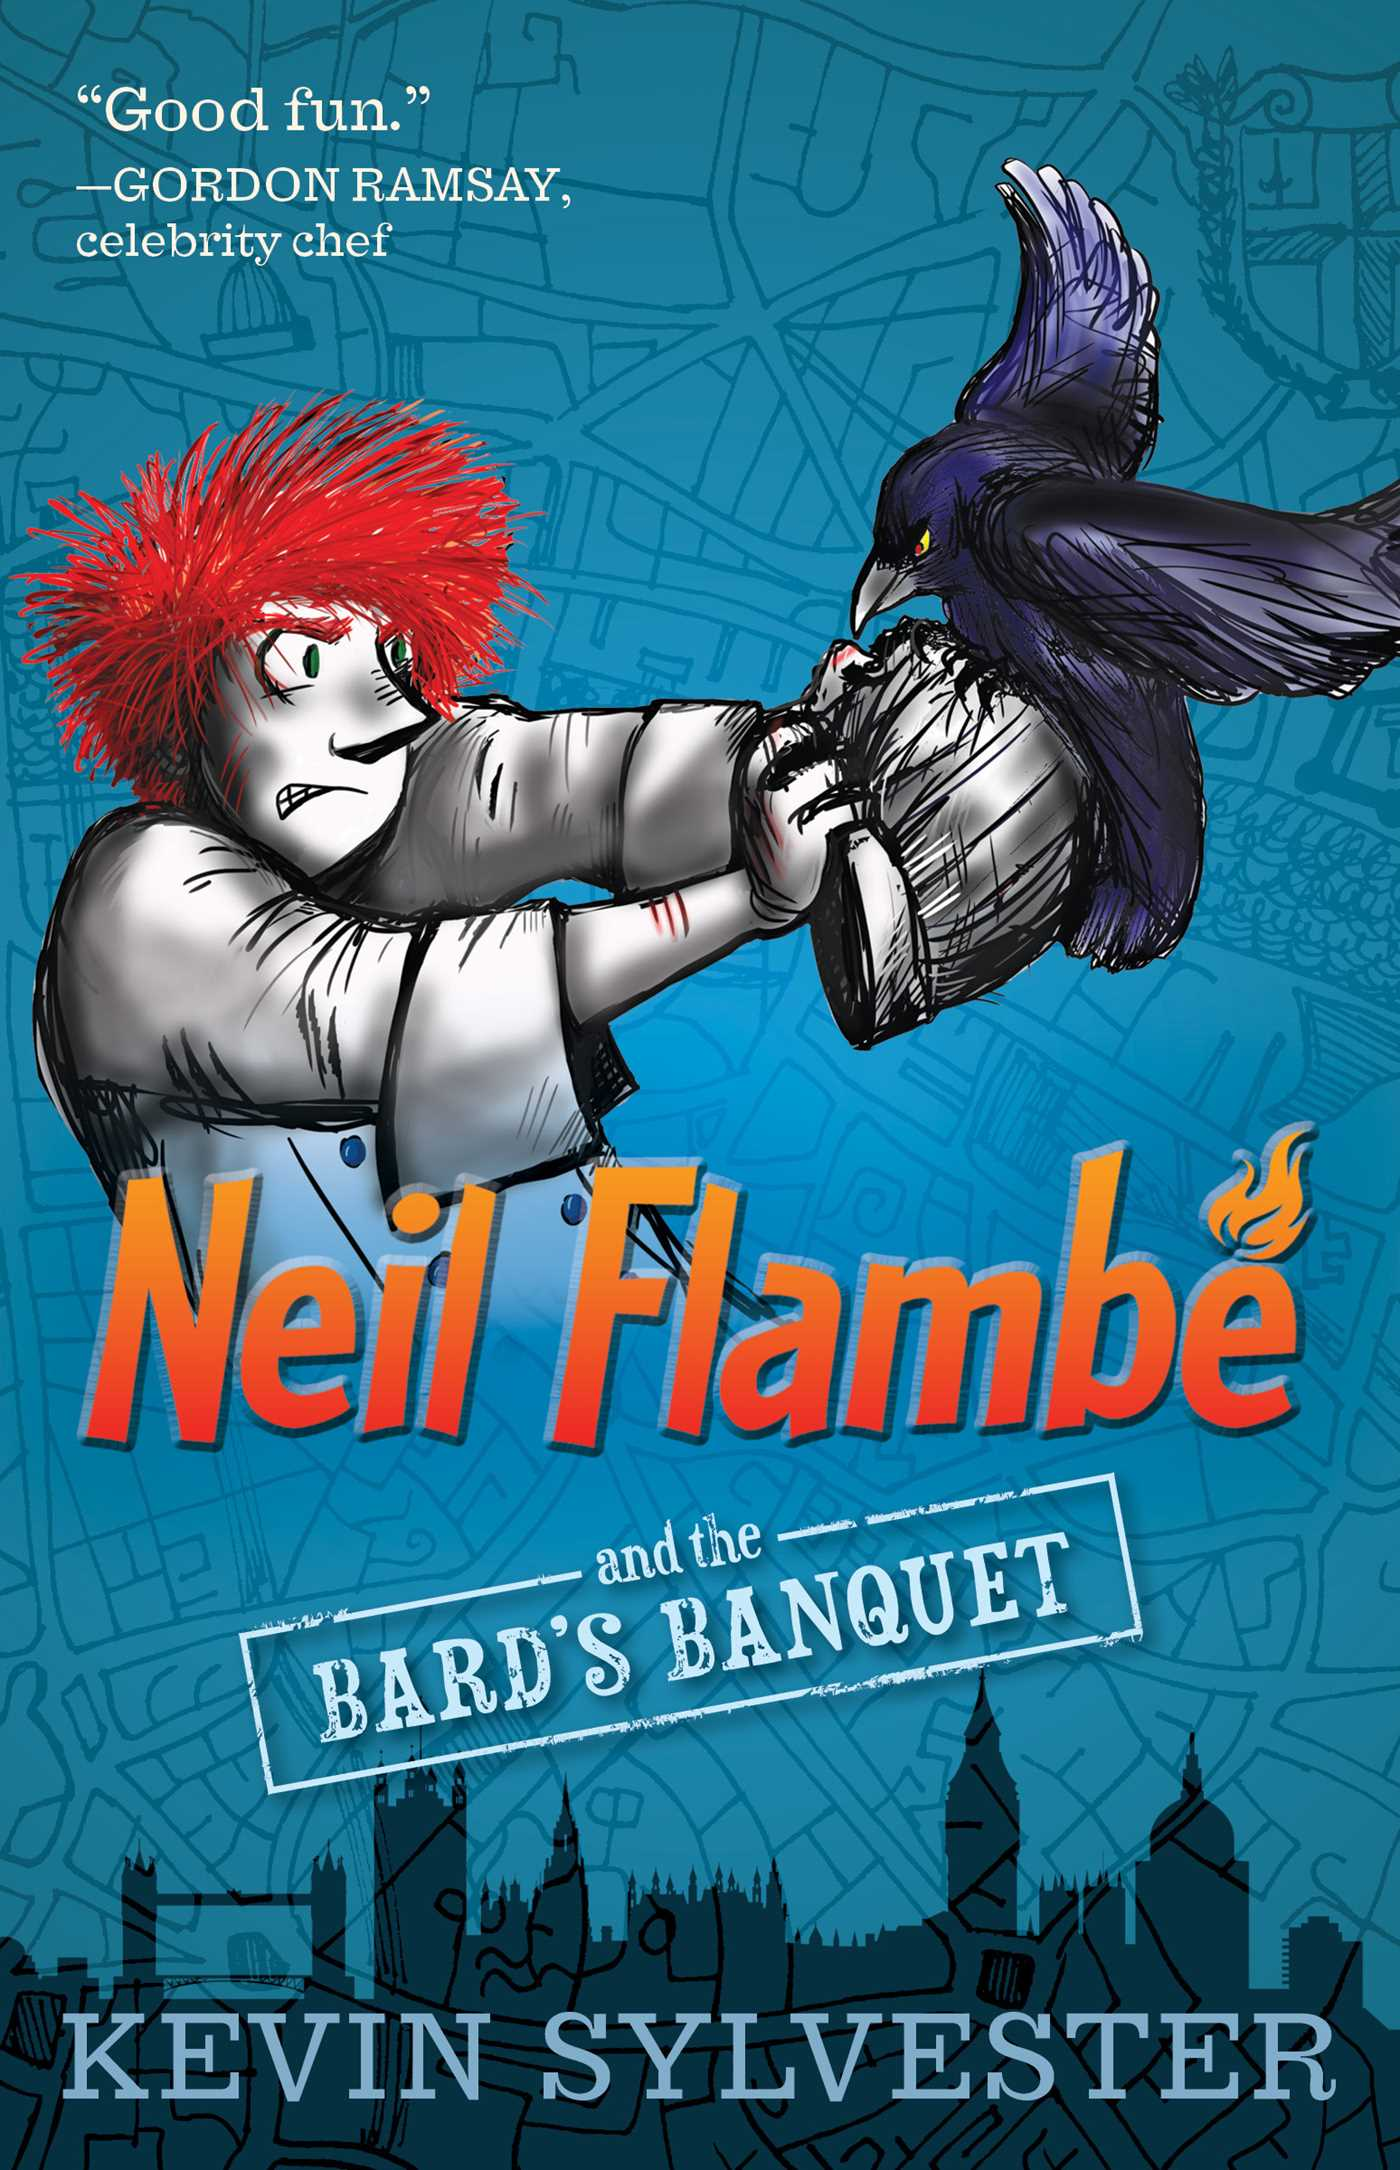 Neil flambe and the bards banquet 9781481410380 hr